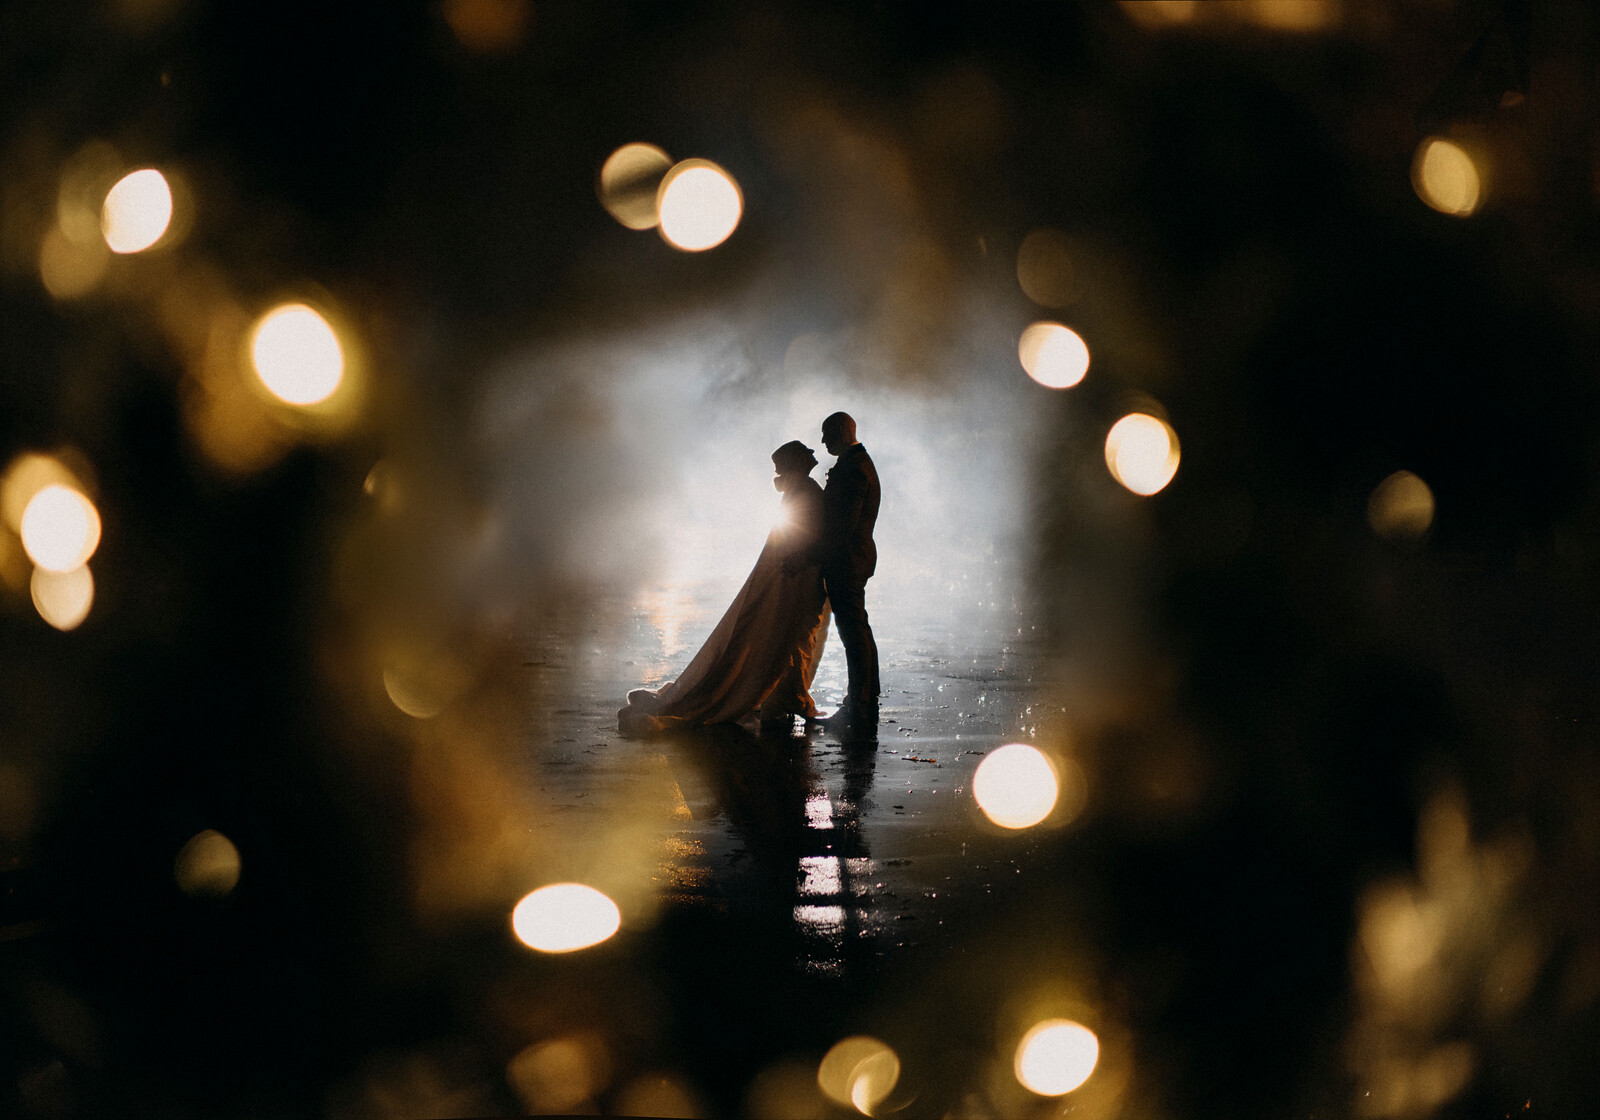 Bride and groom in the middle with lights all around them| Wedding photos